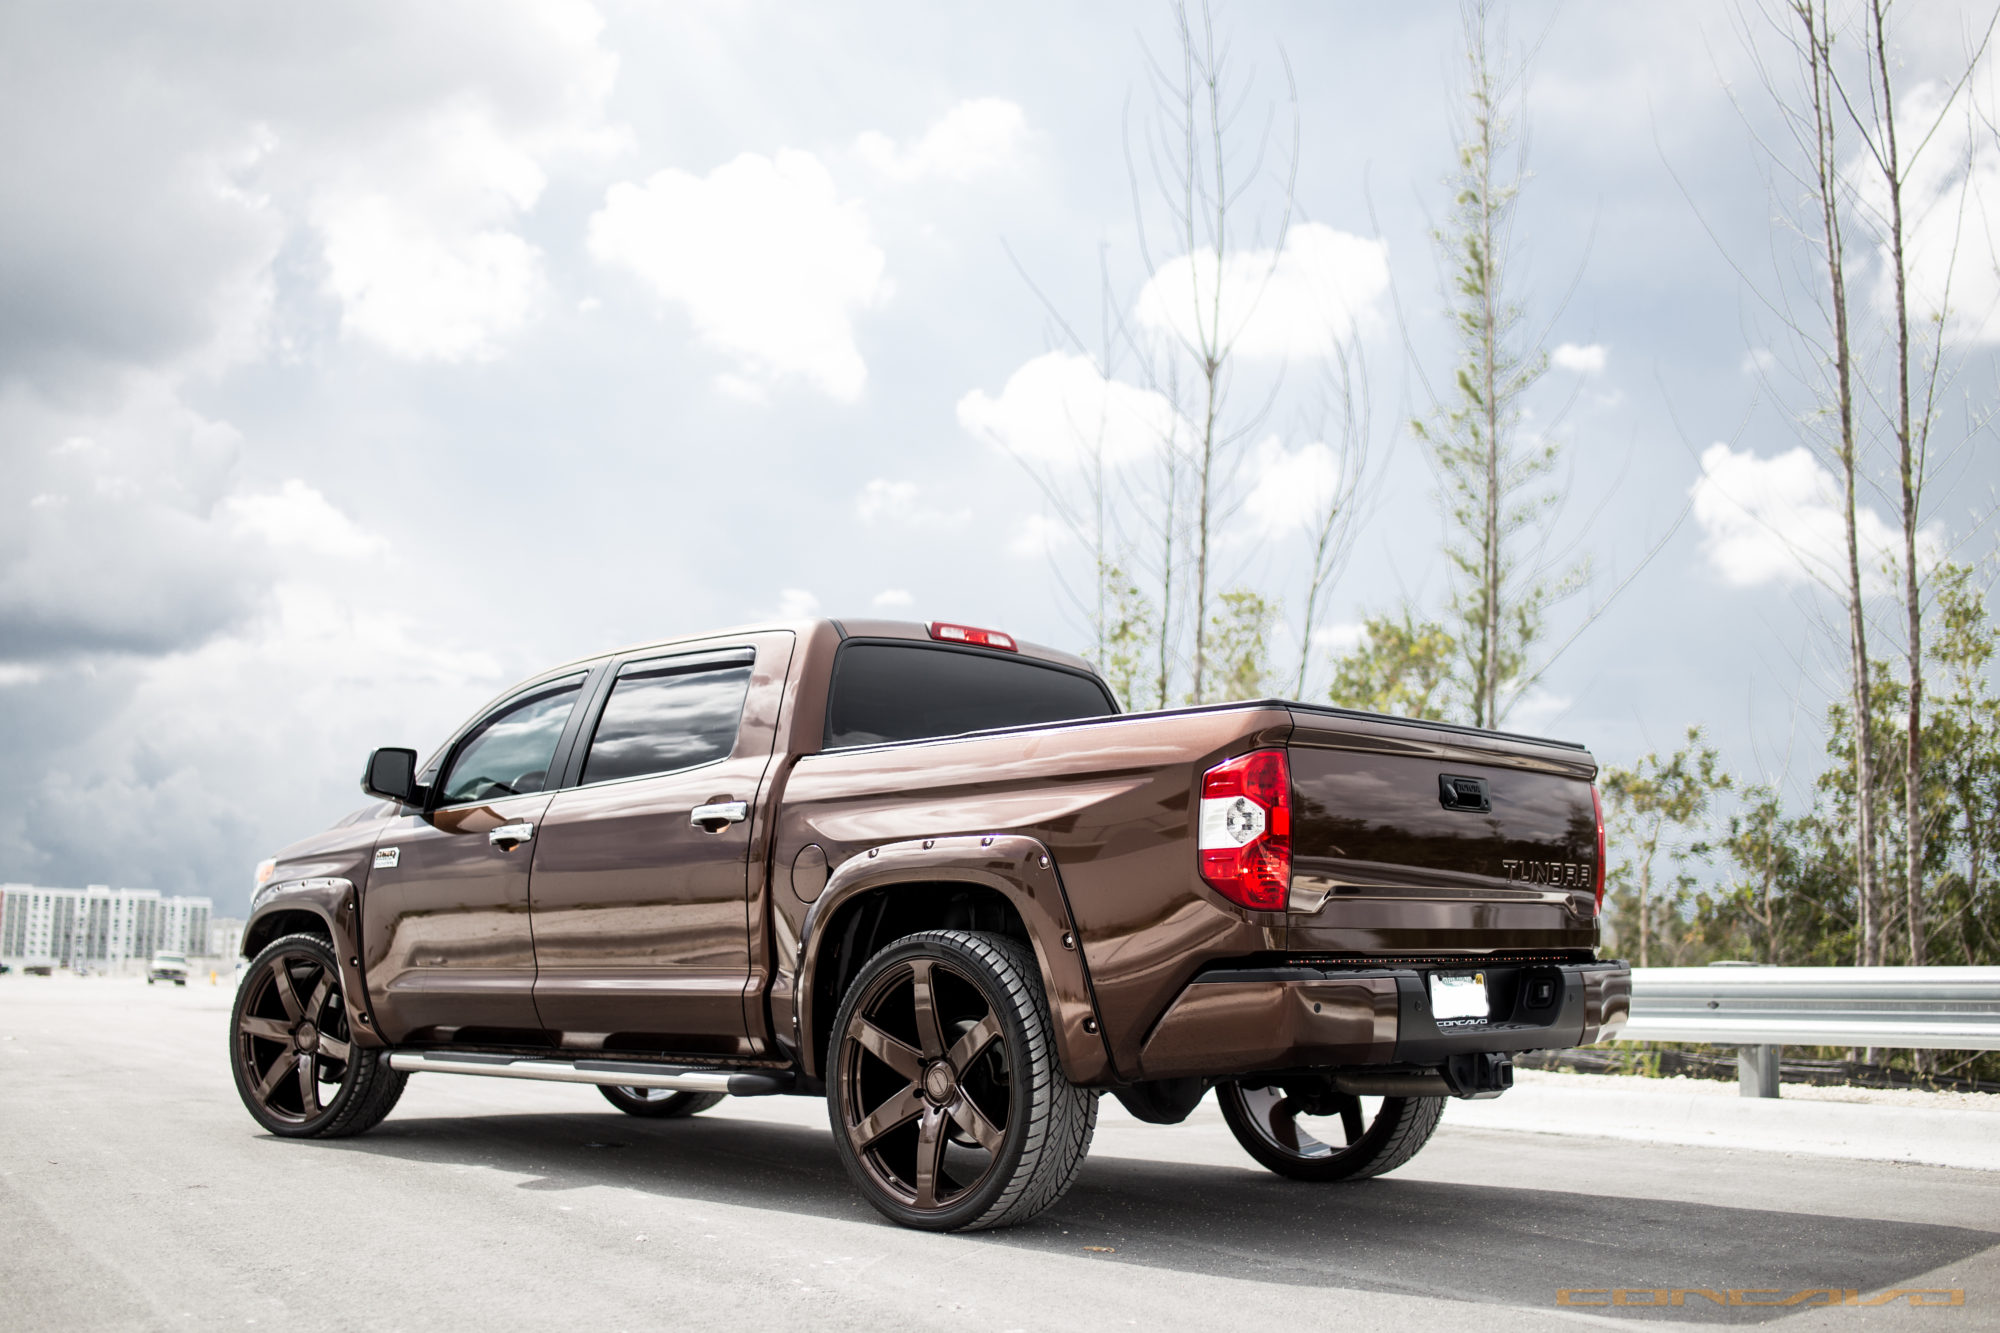 Toyota Tundra on Color Matching 26″ CW-6 – Concavo Wheels